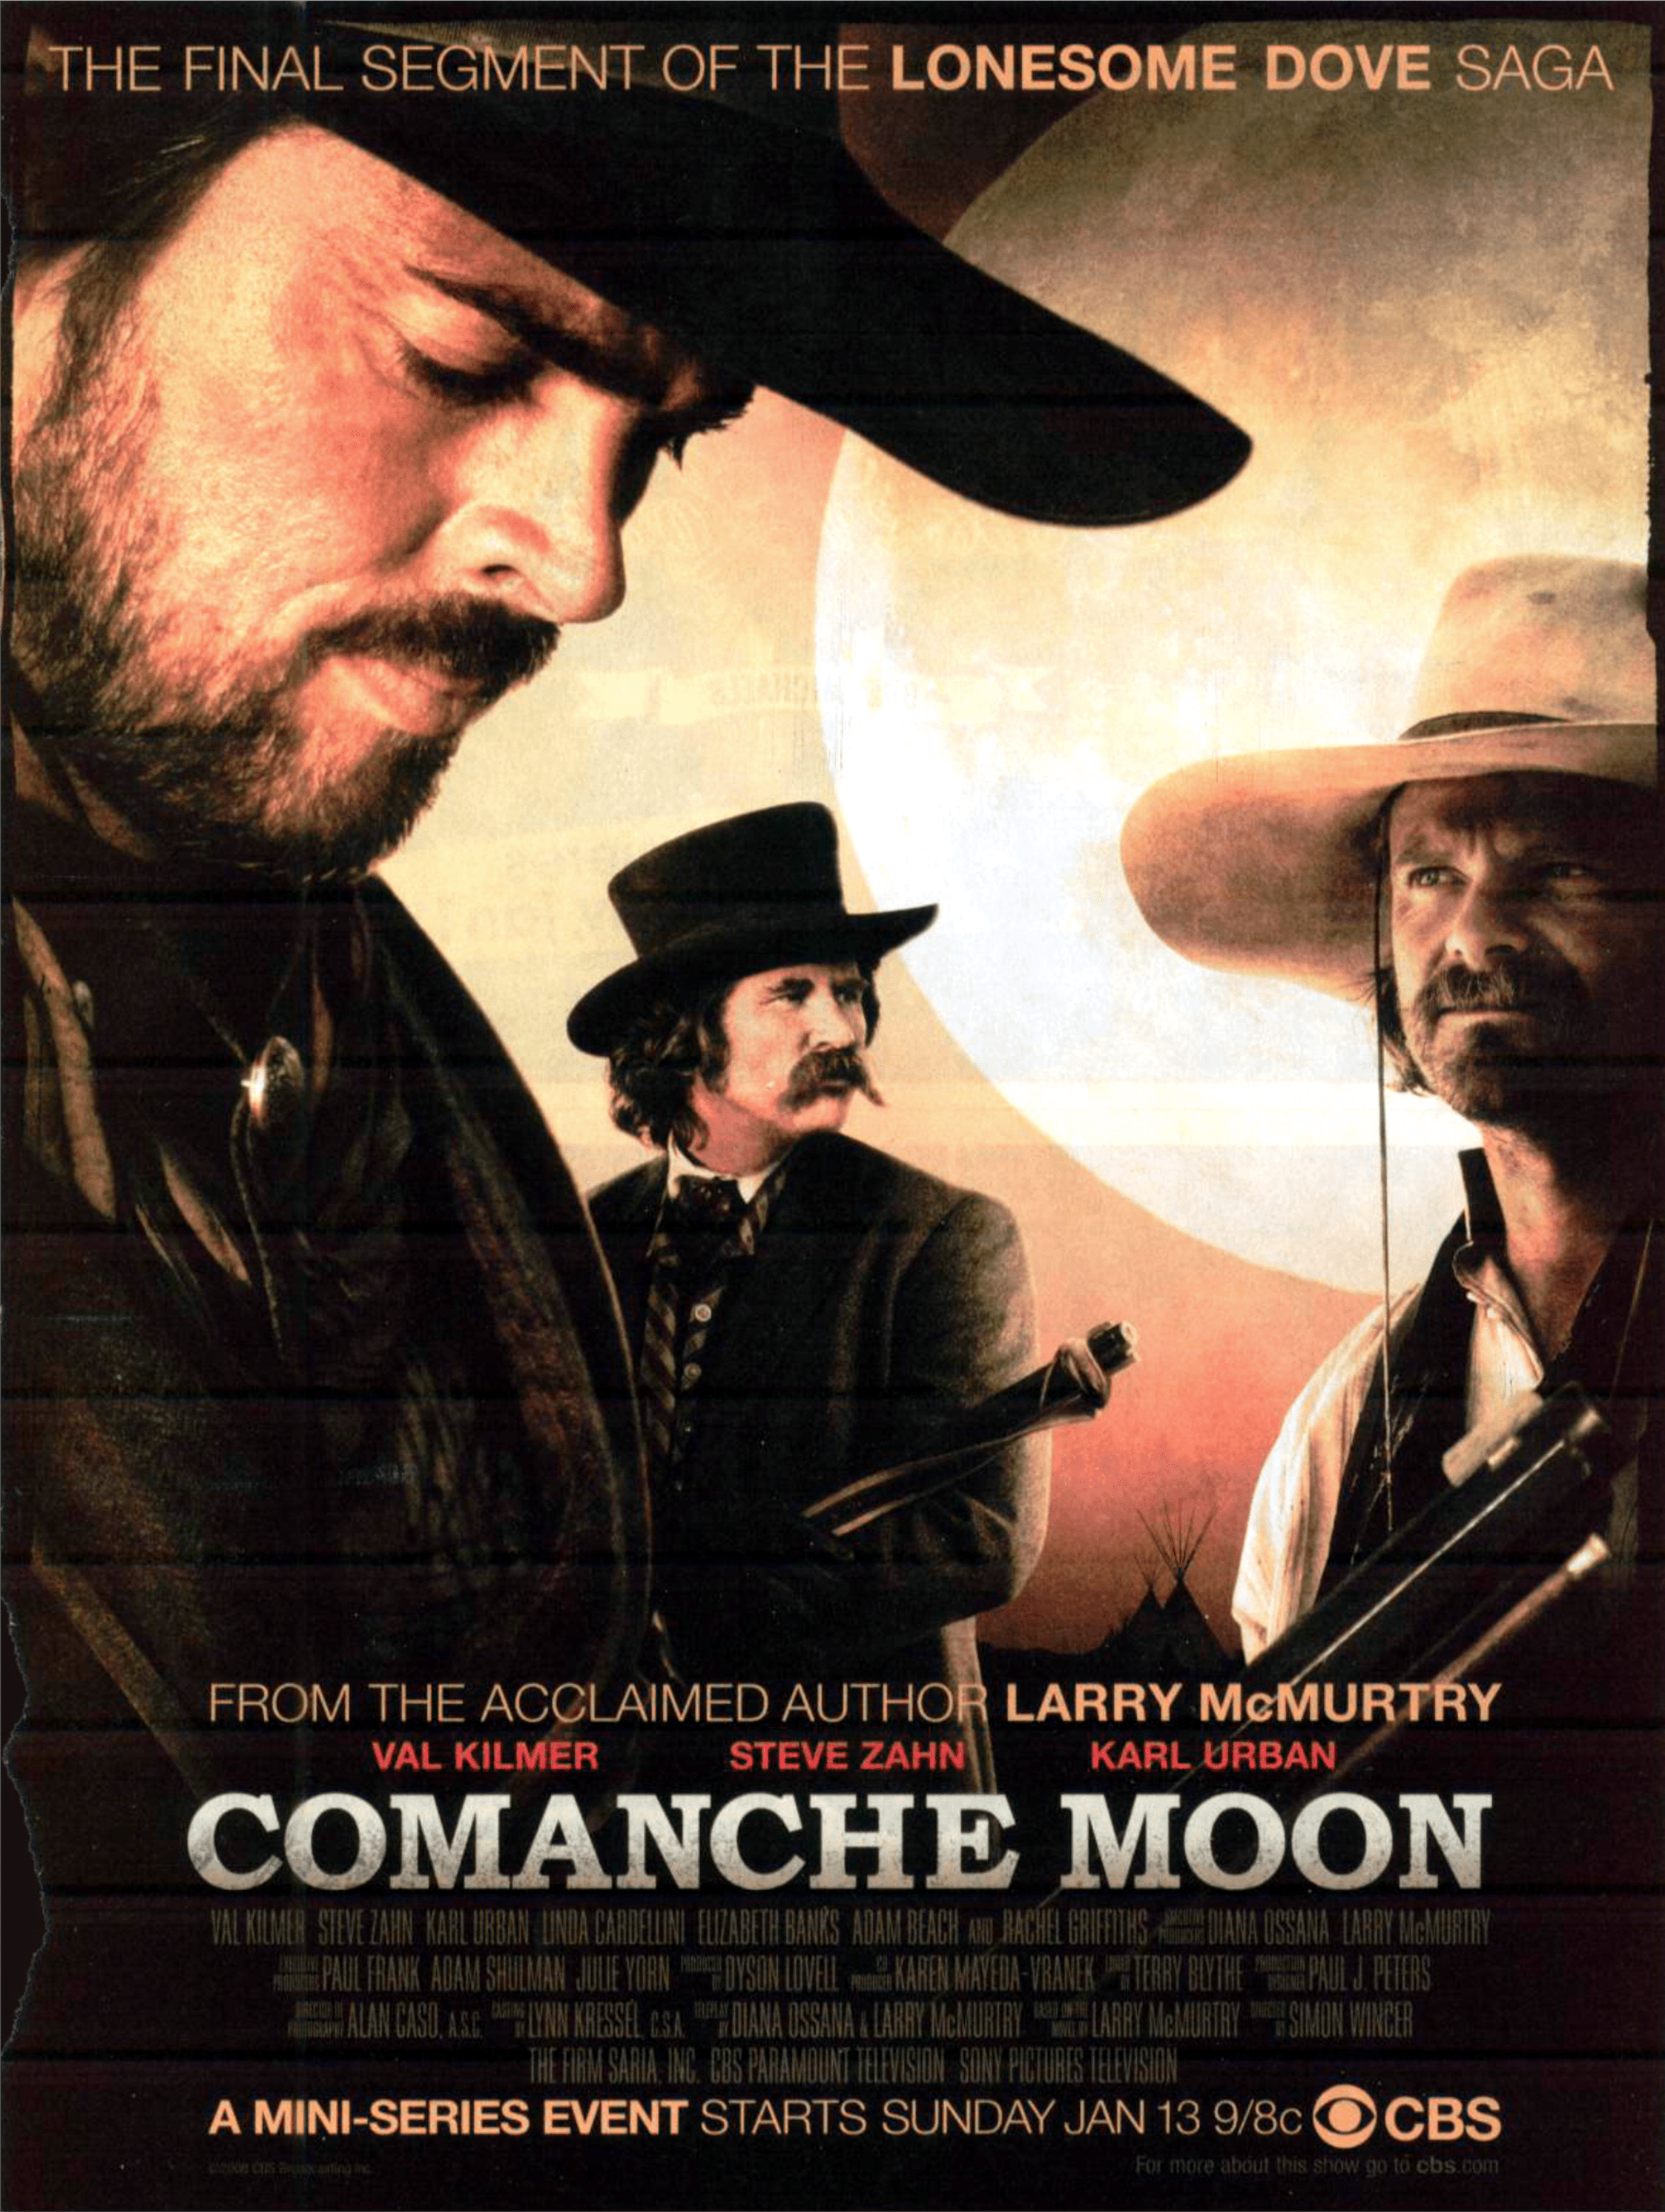 lonesome dove spin offs and wannabes